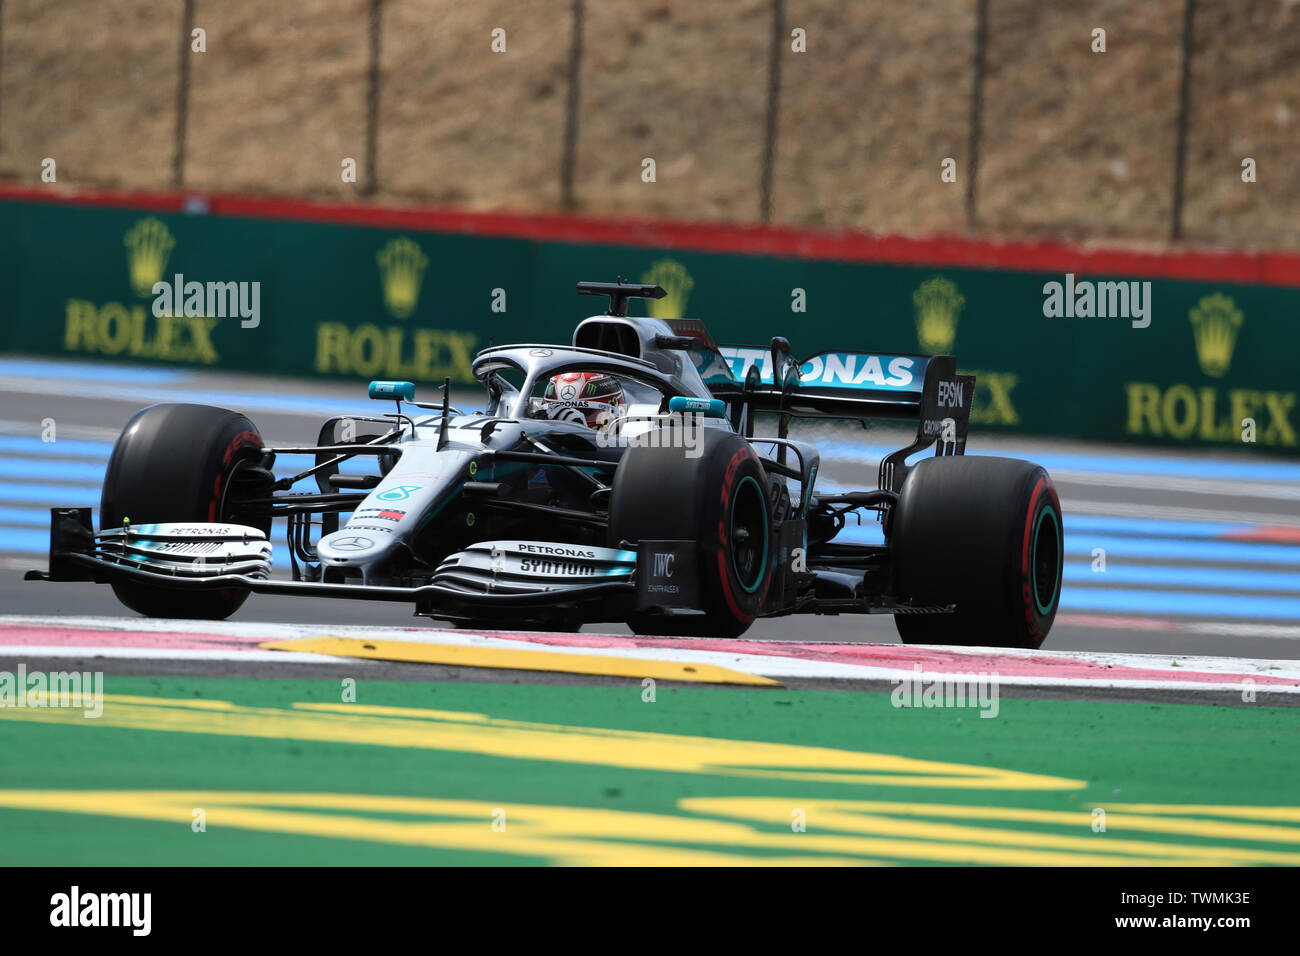 Marseille, France. 21st Jun 2019. FIA Formula 1 Grand Prix of France, practice sessions; Mercedes AMG Petronas Motorsport, Lewis Hamilton Credit: Action Plus Sports Images/Alamy Live News Stock Photo